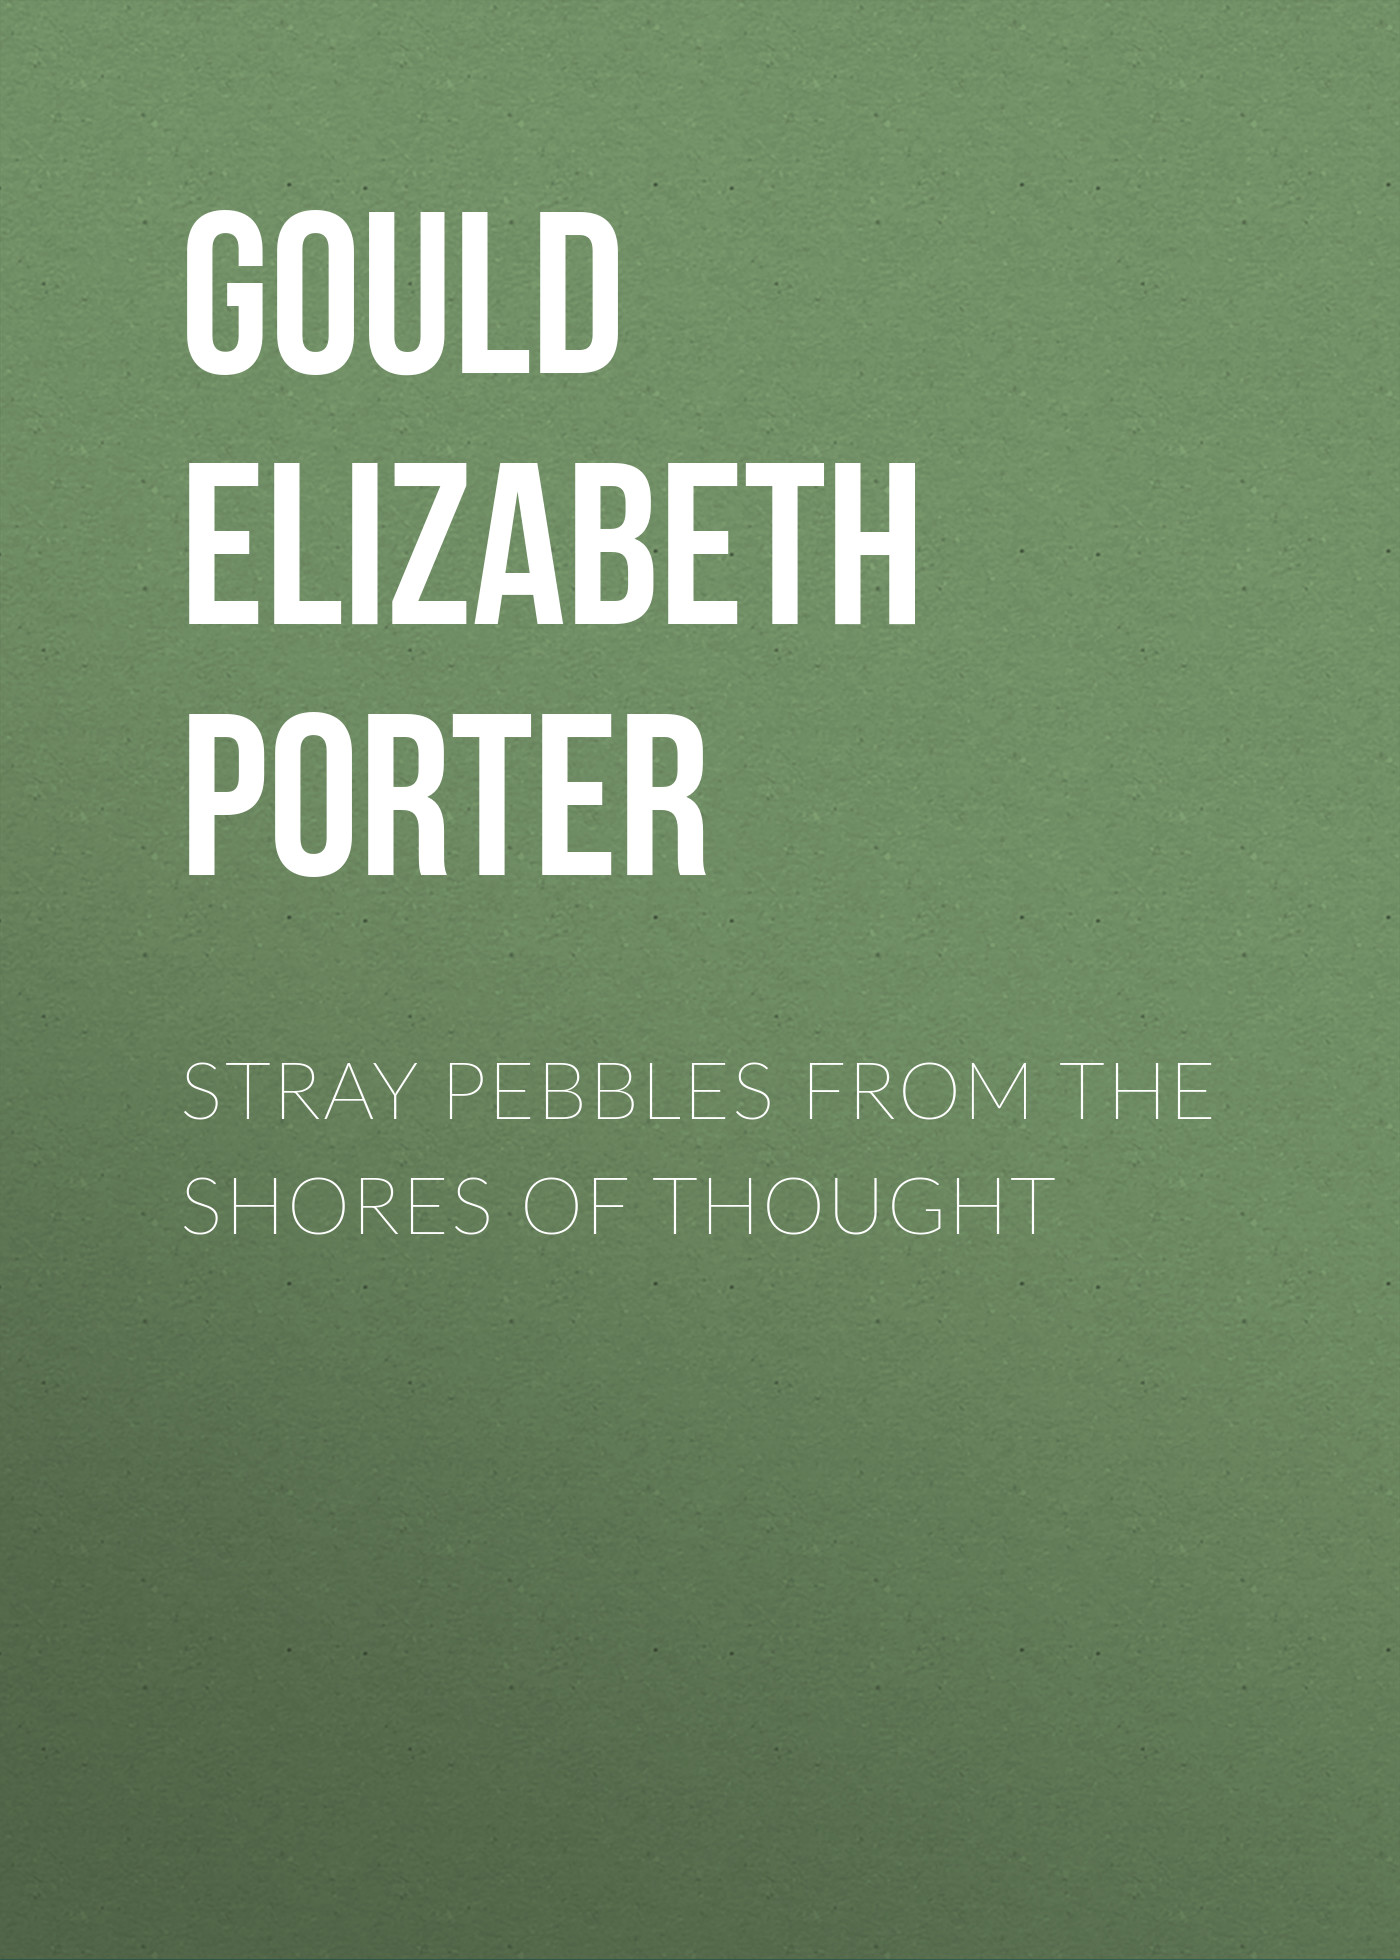 Gould Elizabeth Porter Stray Pebbles from the Shores of Thought alex ryder shores of love